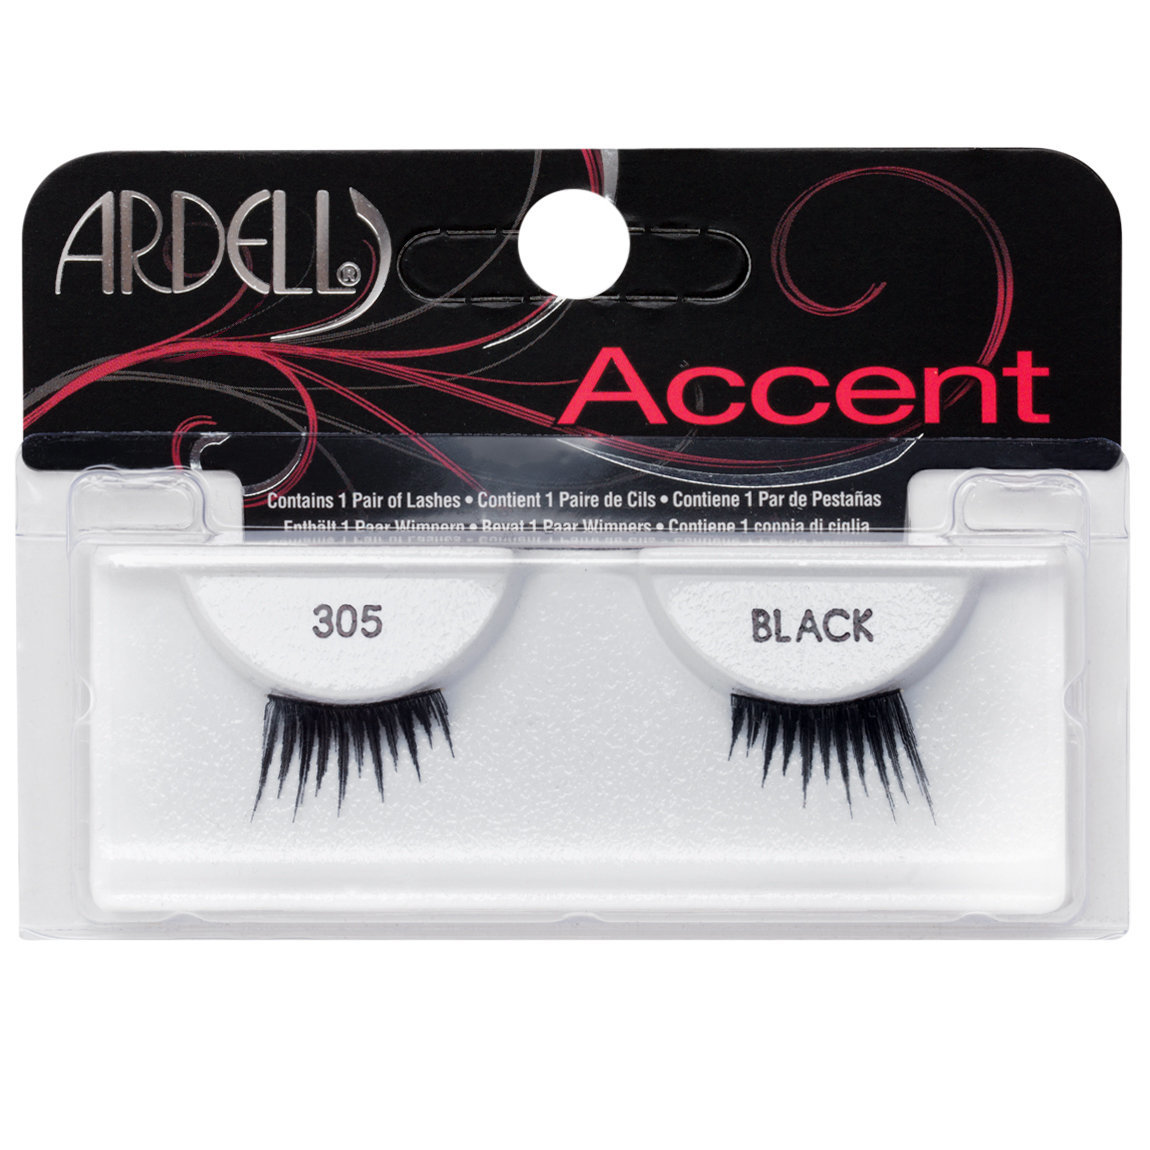 Ardell Accent Lashes 305 Black